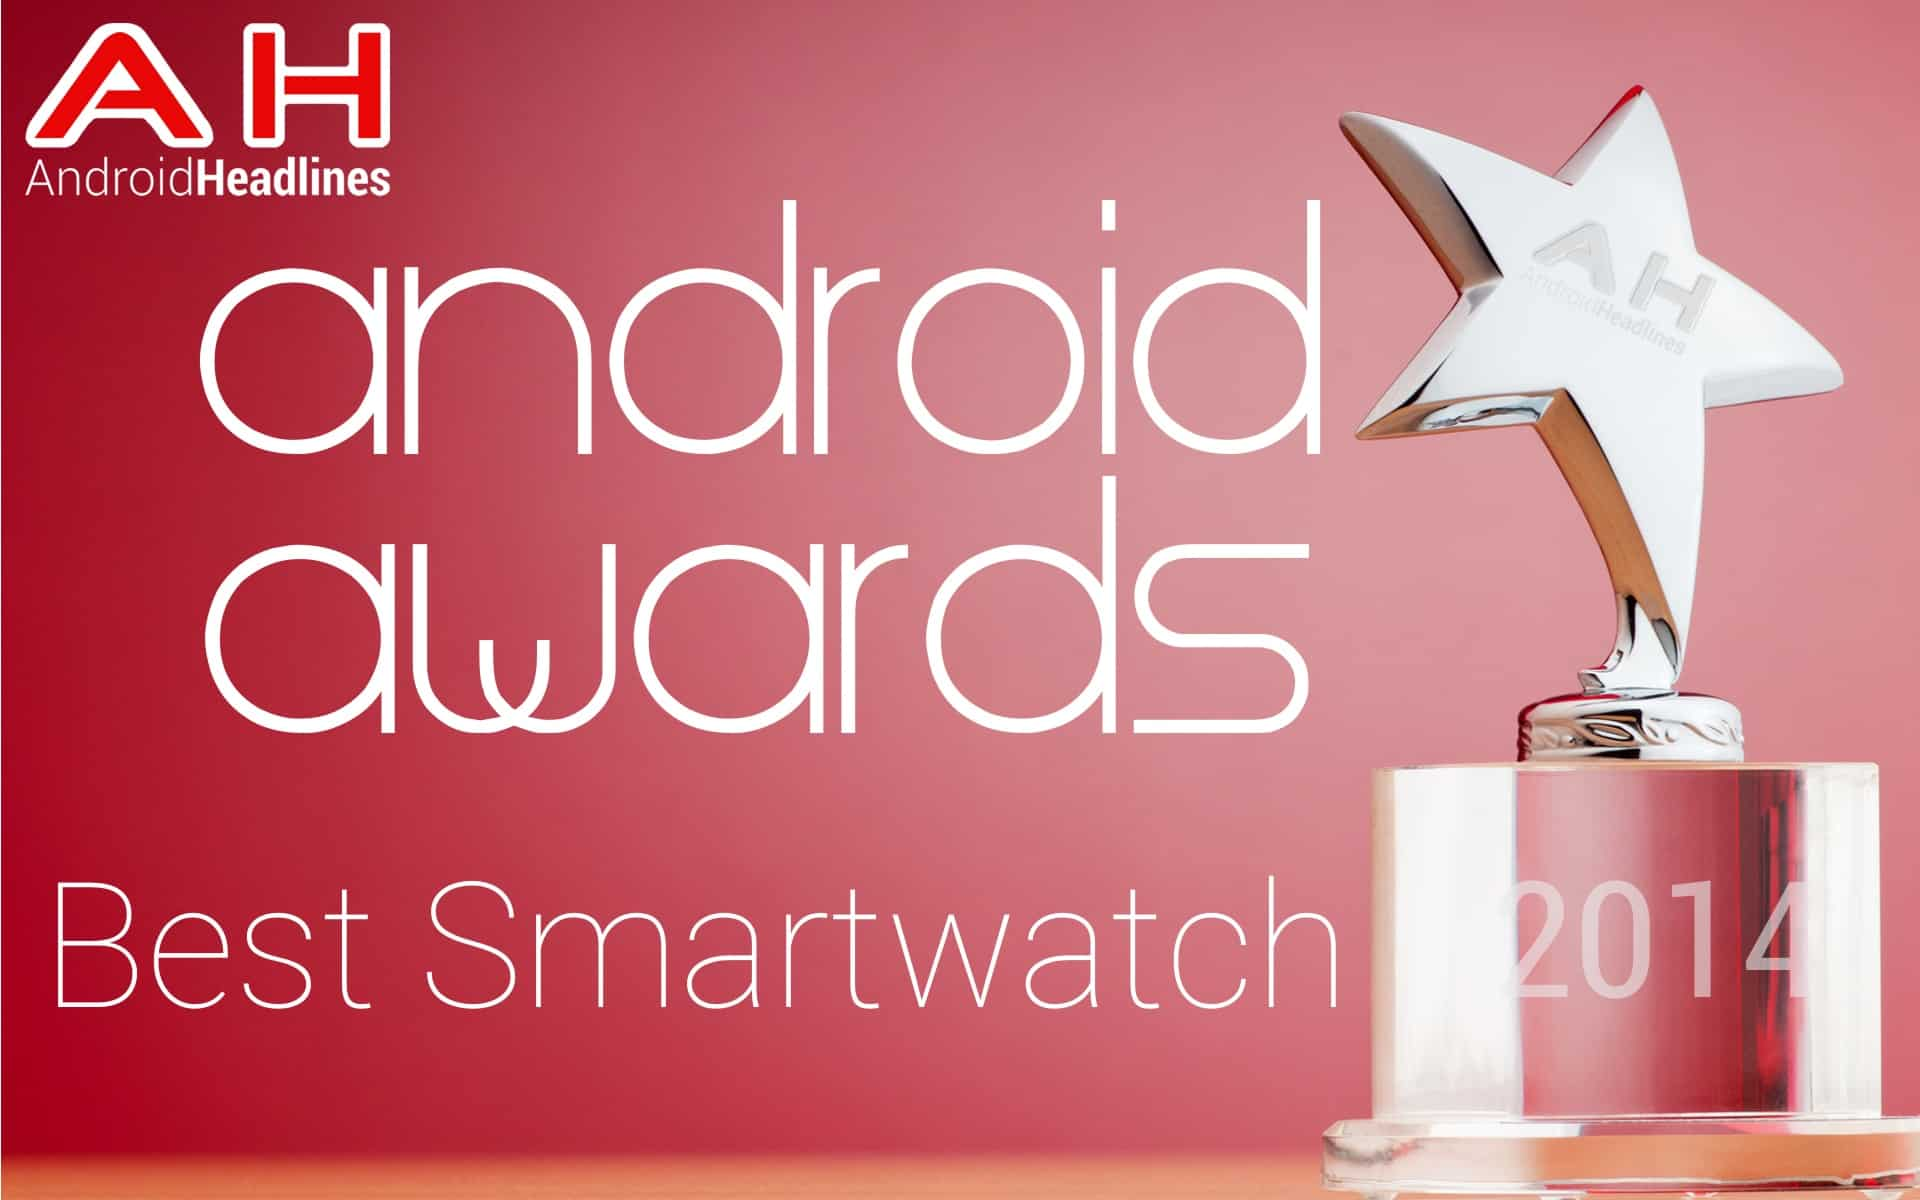 AH Awards 2014 Best Android Smartwatch of the year